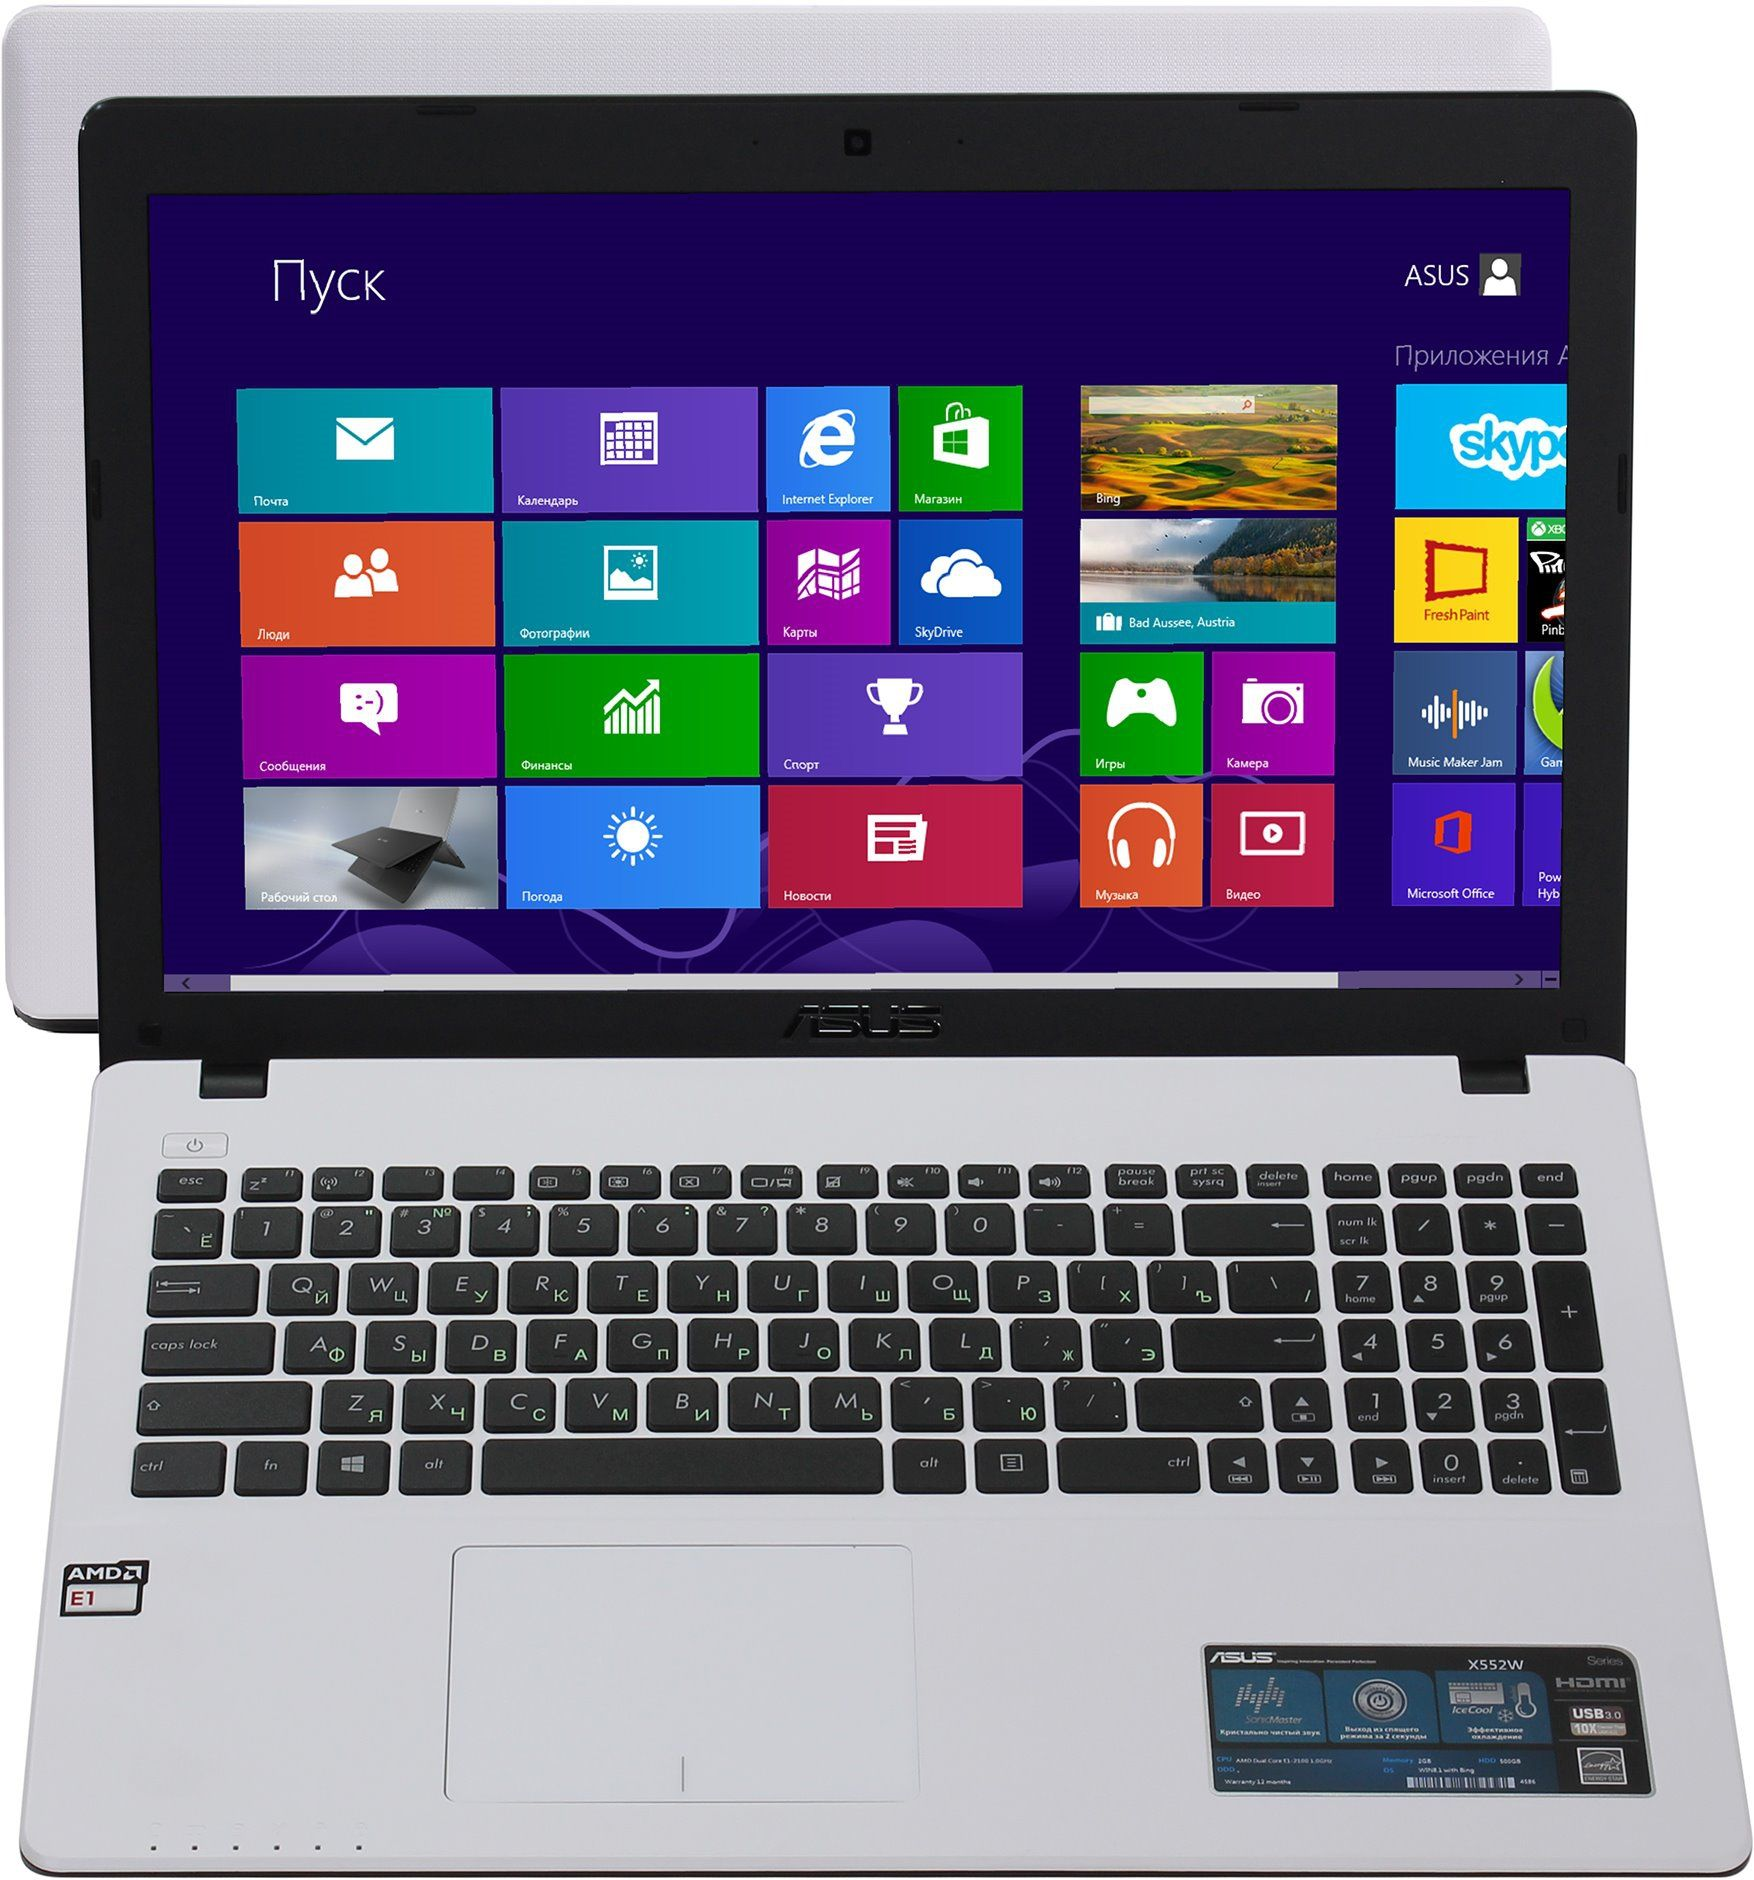 "ASUS X552Wa E1-2100/2G/500G/15,6""HD /HD 8210 /WiFi/Cam/BT/Win 8 Bing"